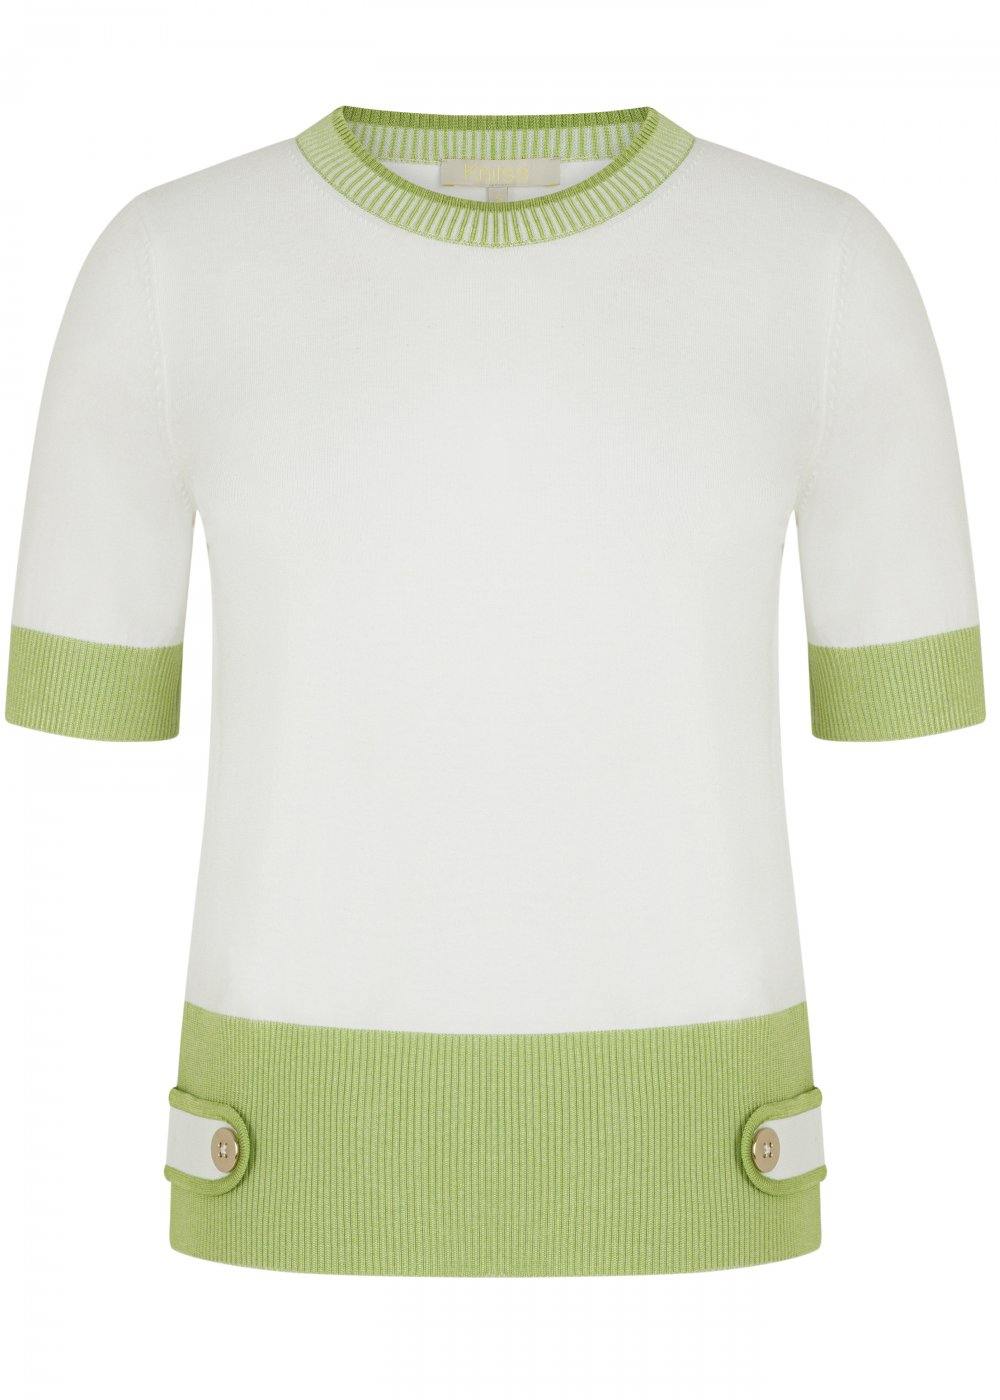 SHORT SLEEVE CREW NECK WHITE KNIT TOP